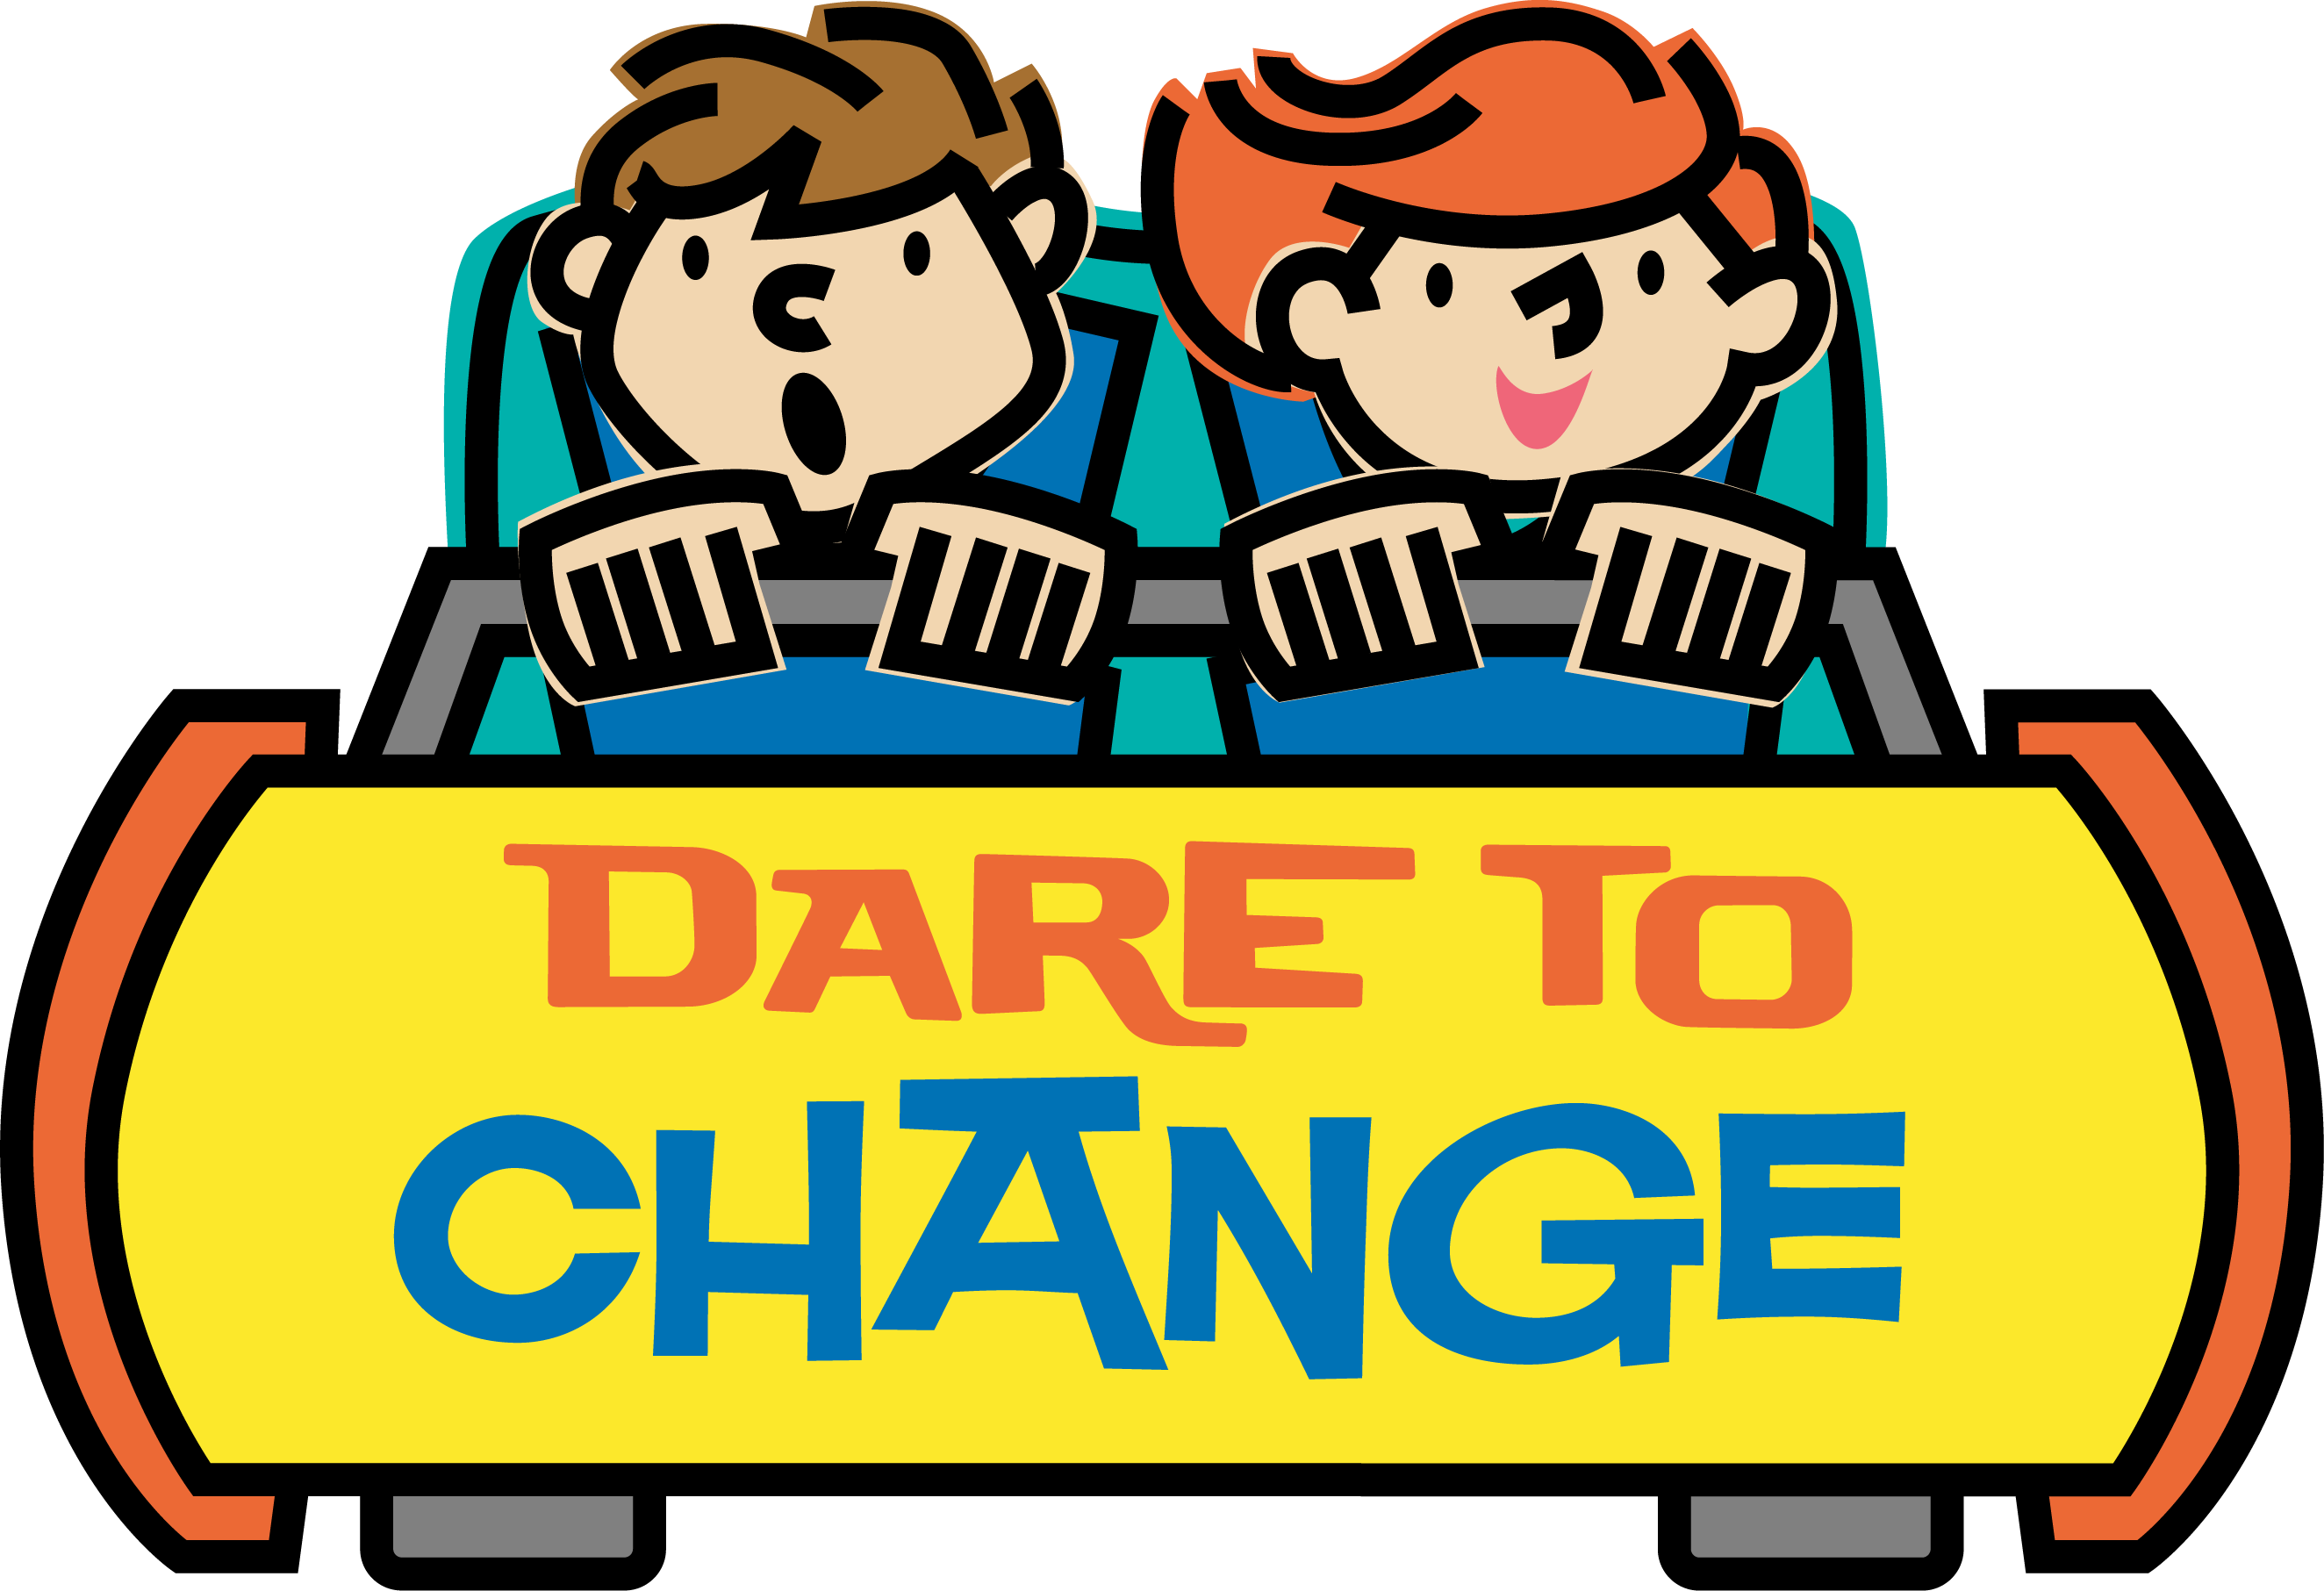 Changes clipart #1, Download drawings